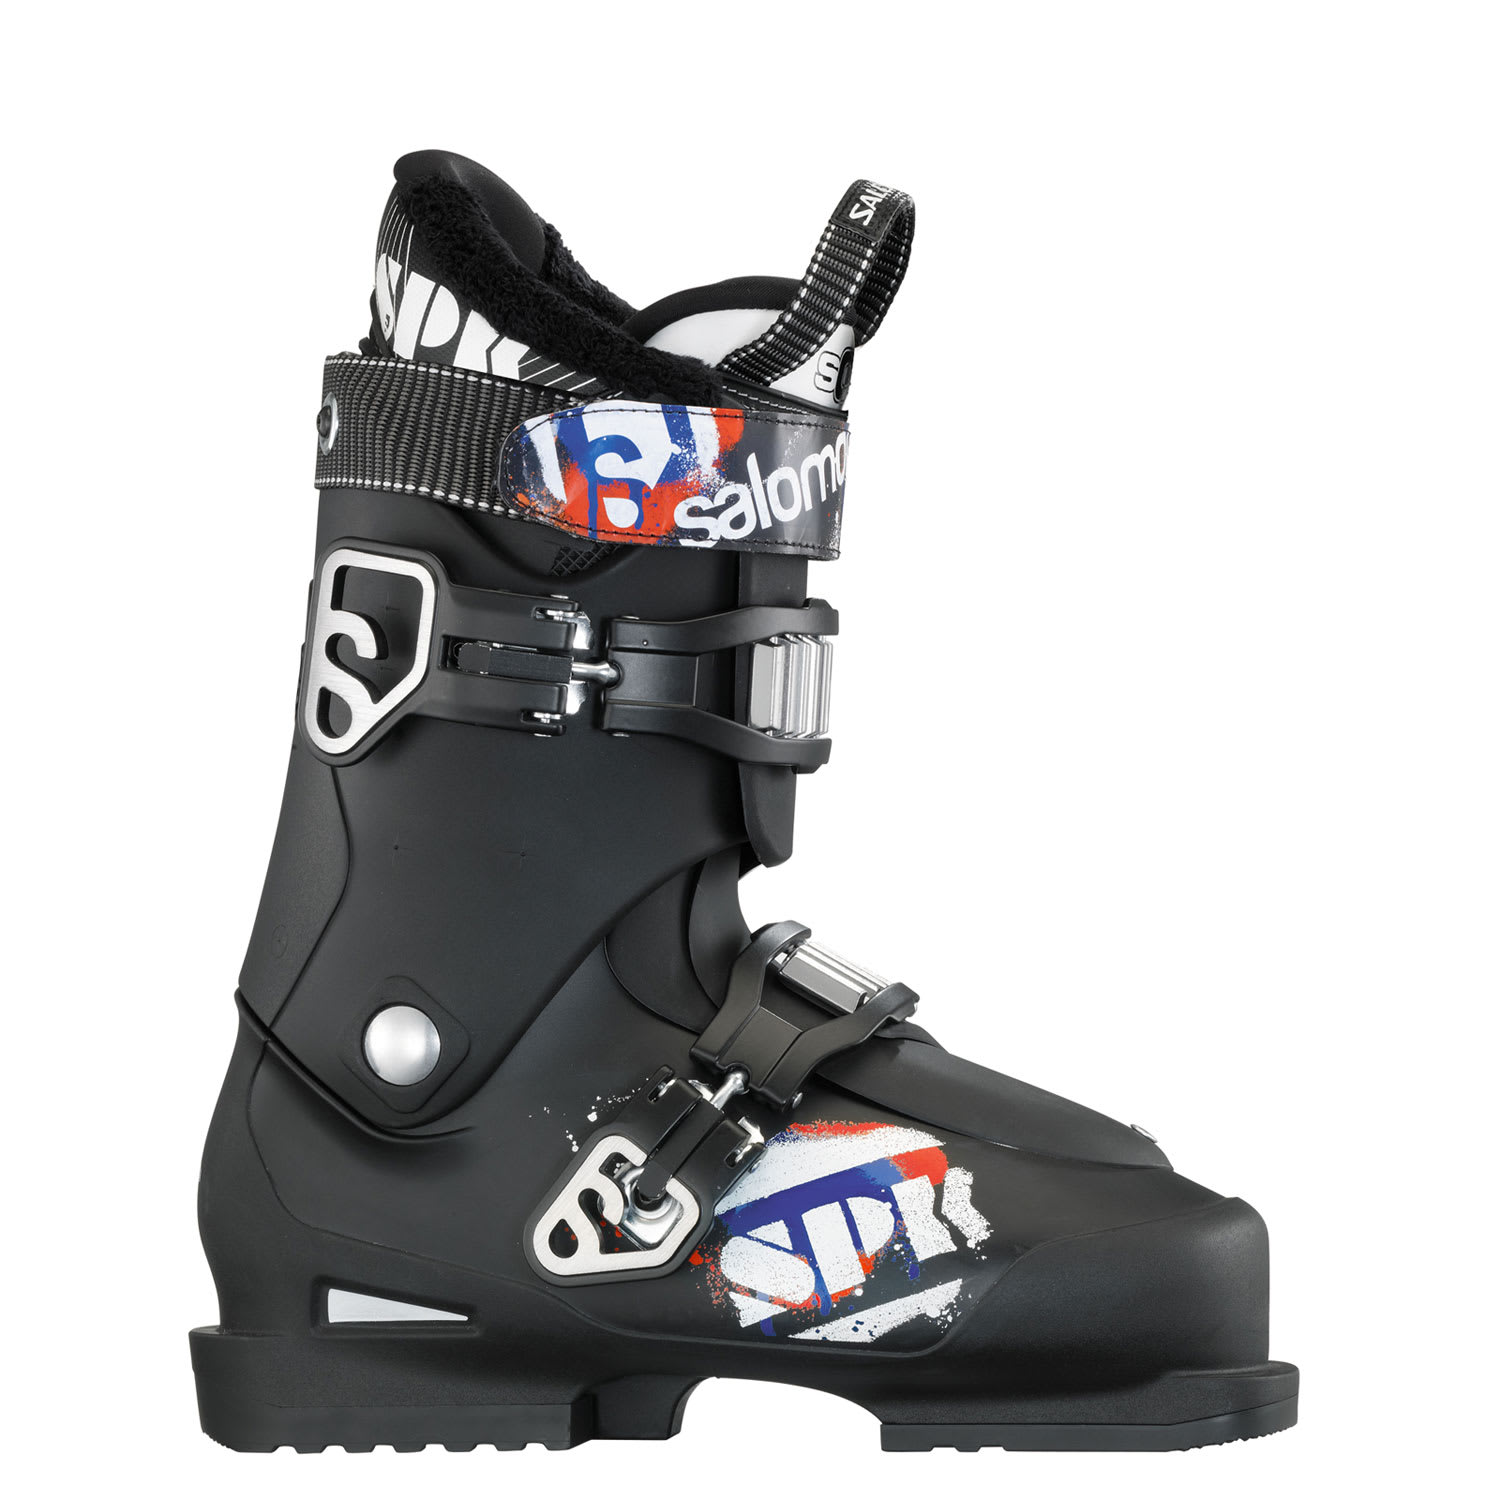 Shop for Salomon Spk 75 Ski Boots Black - Men's